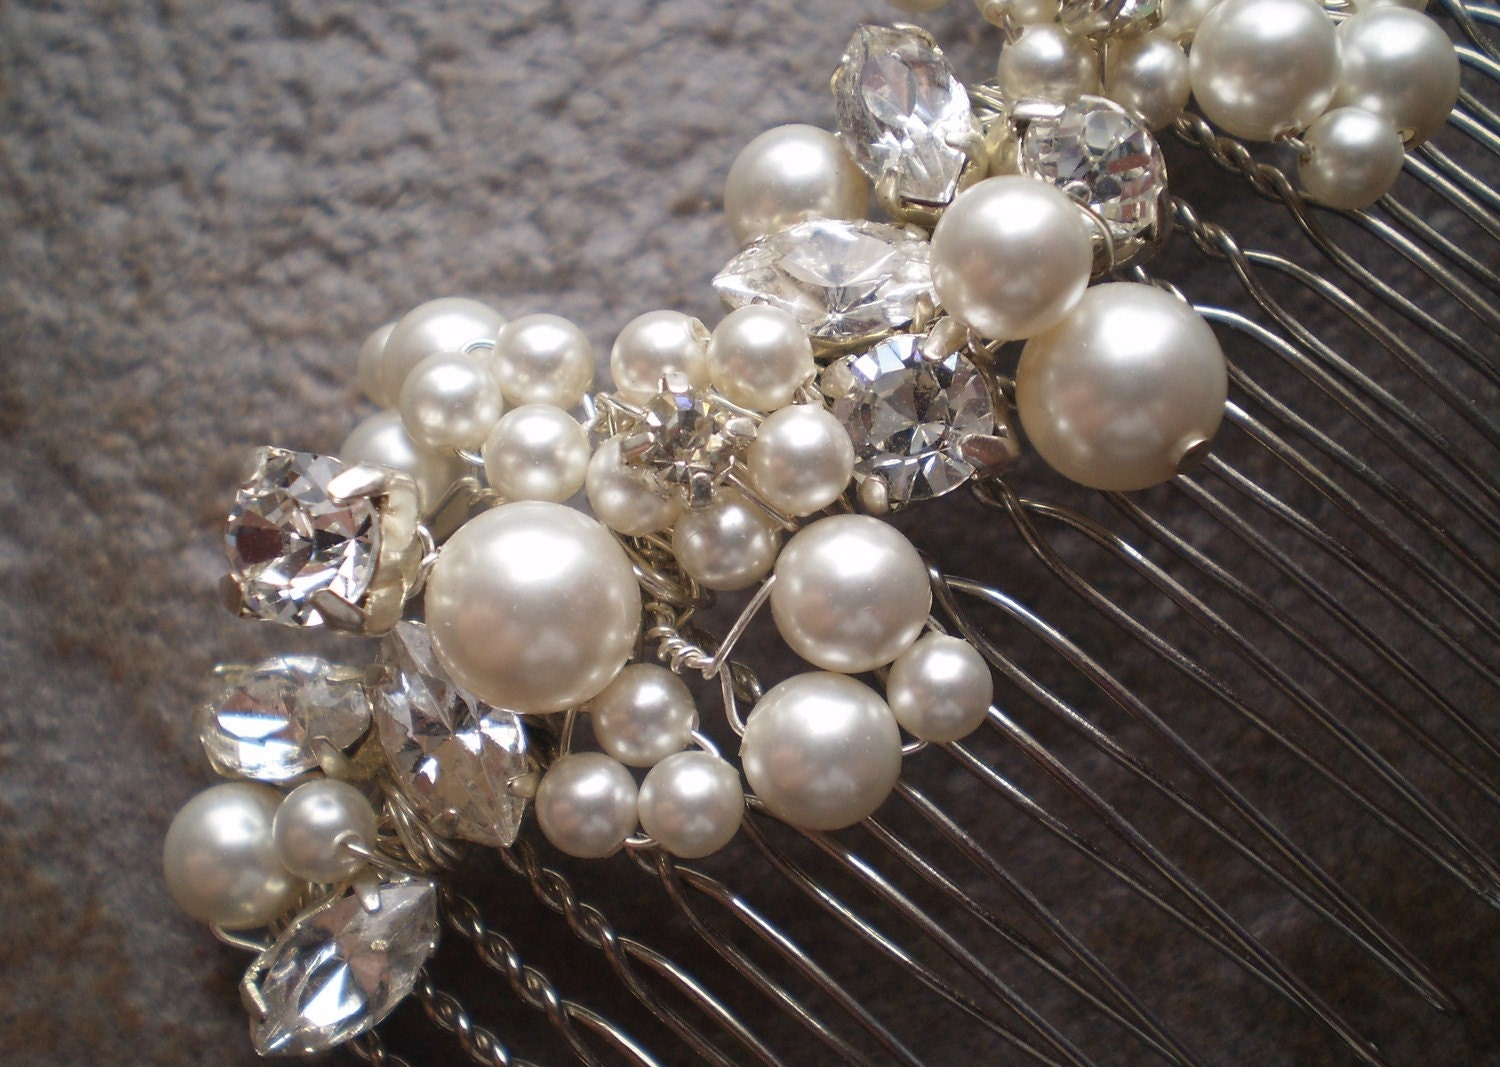 Looking for beautiful handmade jewelry and bridal hair accessories? :  wedding etsy jewelry hair accessories comb pearl diamante crystal ivory gifts gold white silver bridesmaids Il 570xN.185105848.jpg